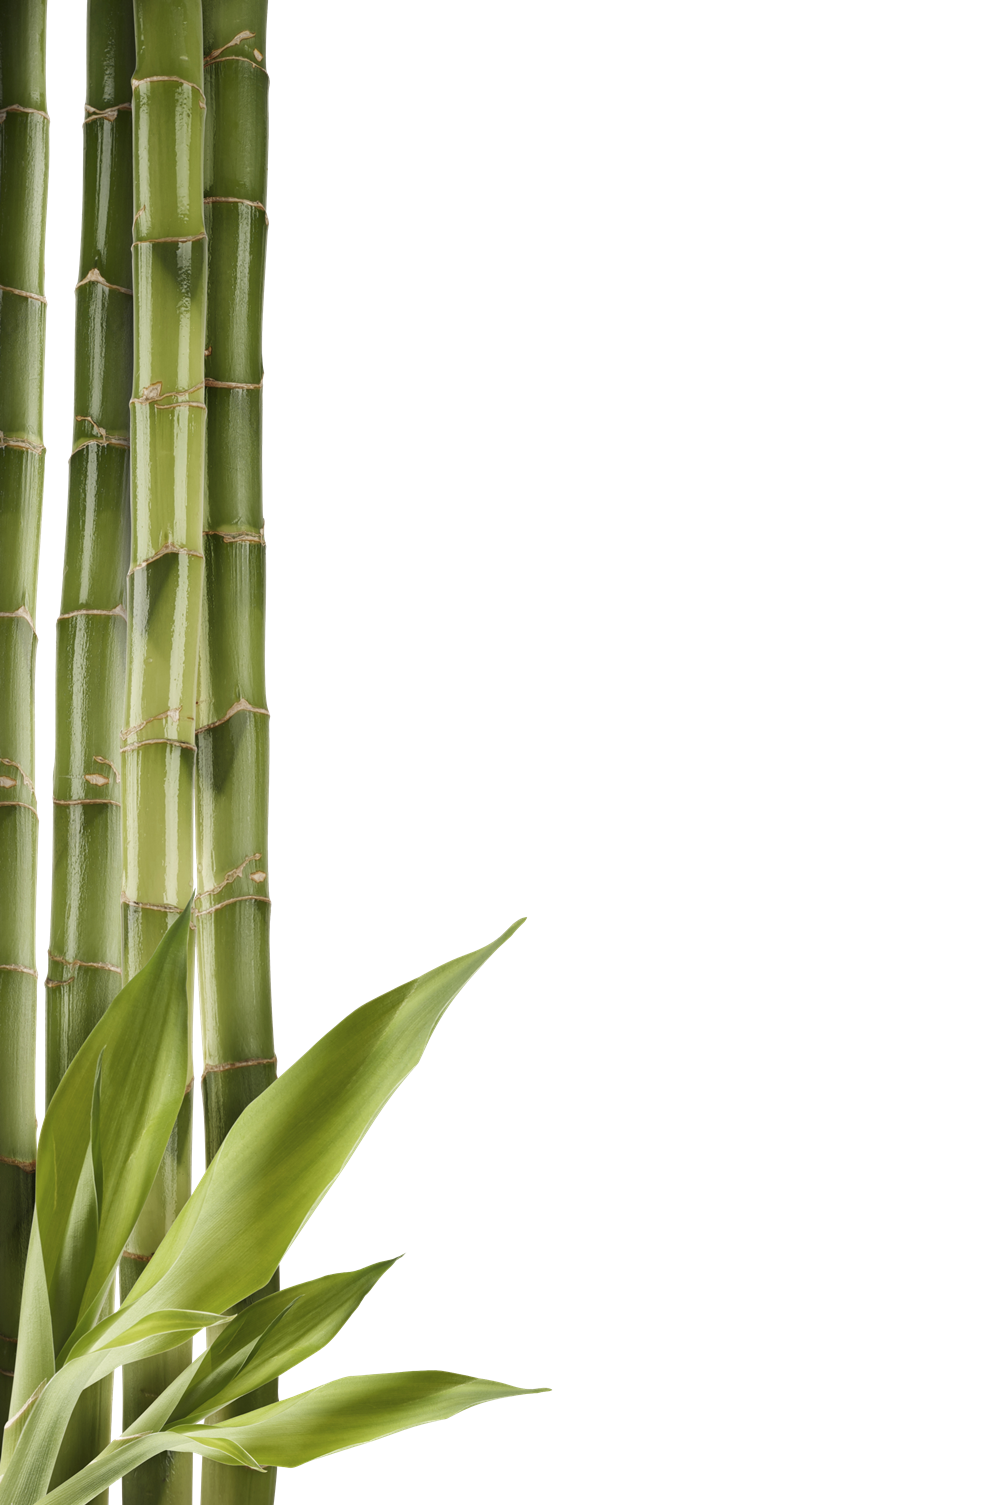 Bamboo clipart bamboo pole All PNG PNG Advertisement Images